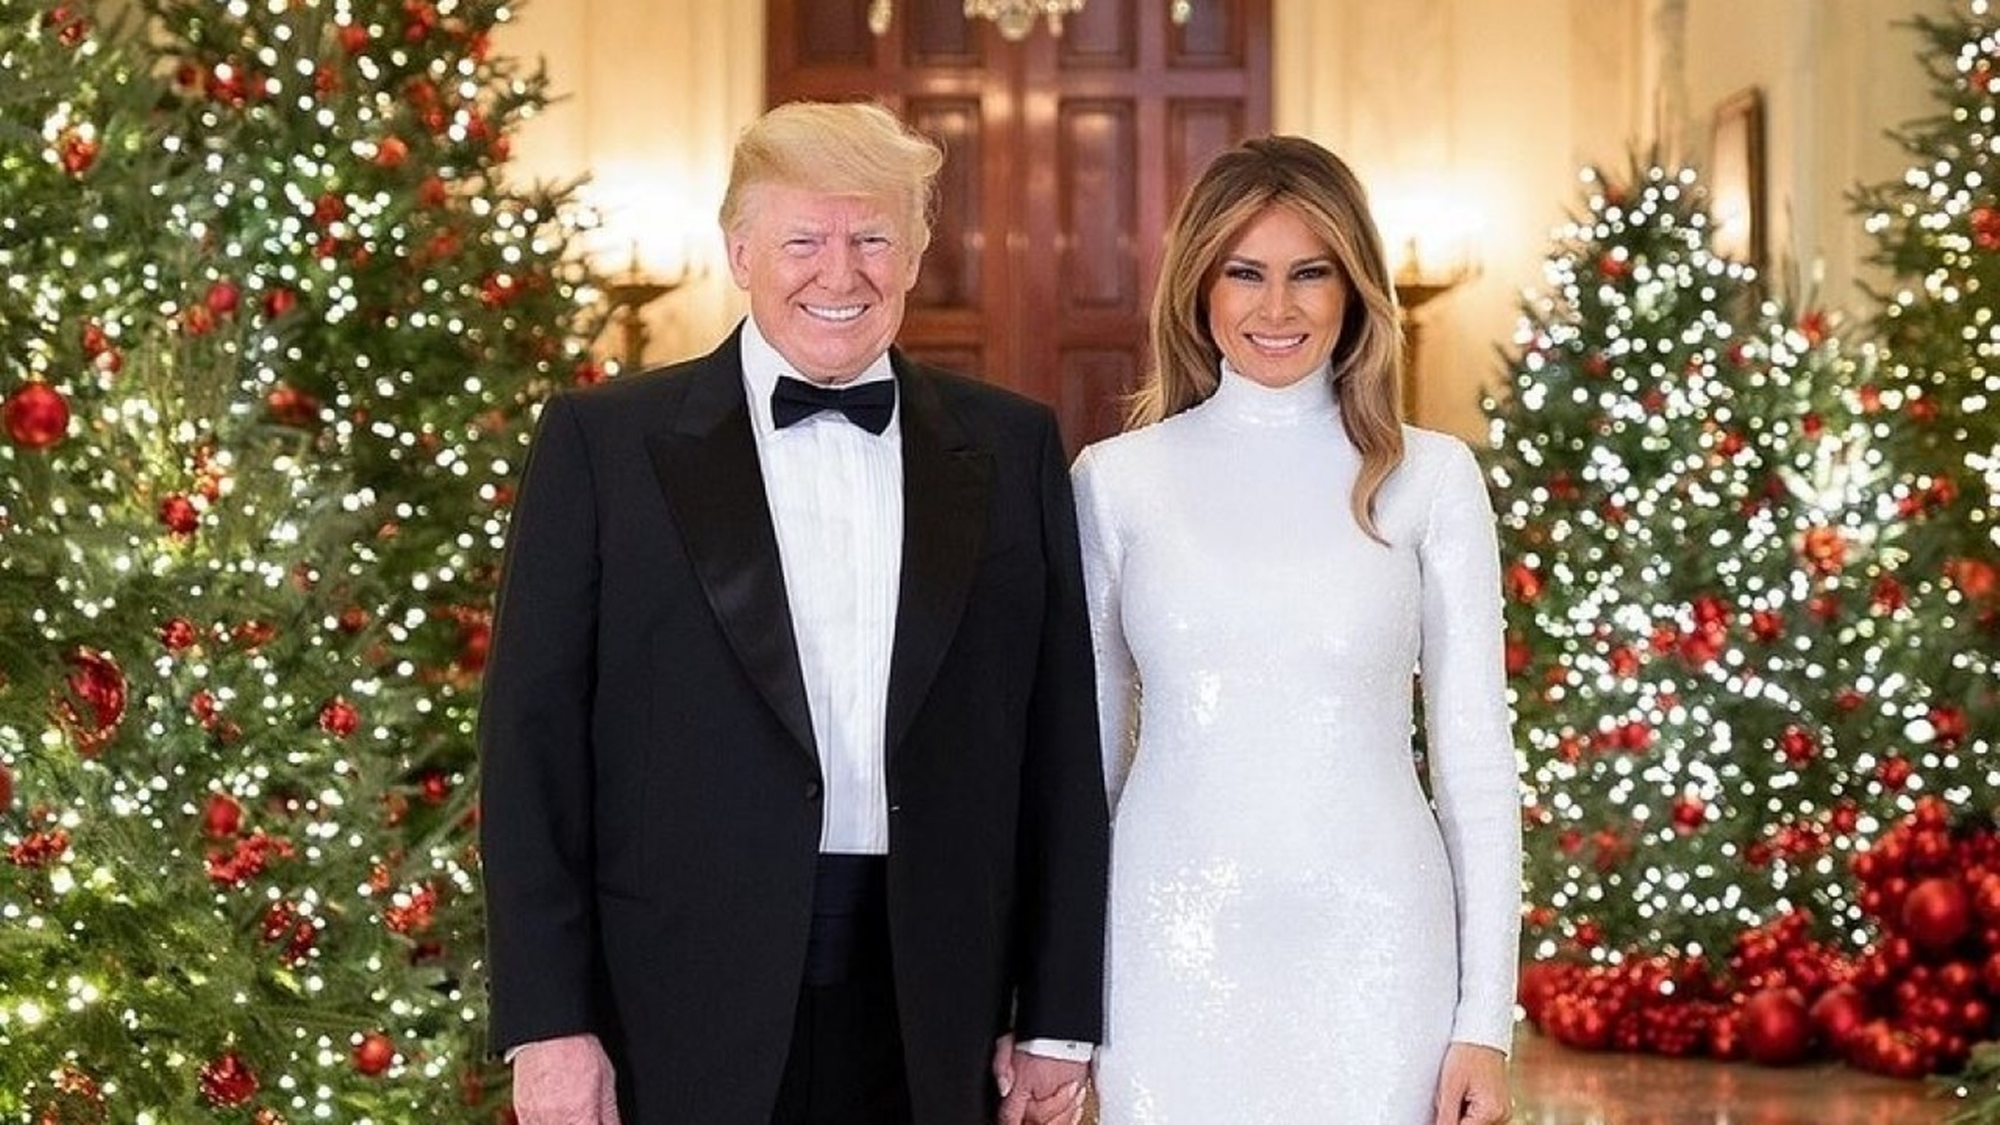 Melania Christmas Decorations.Melania Trump Is Dragged For Posting Gorgeous Christmas